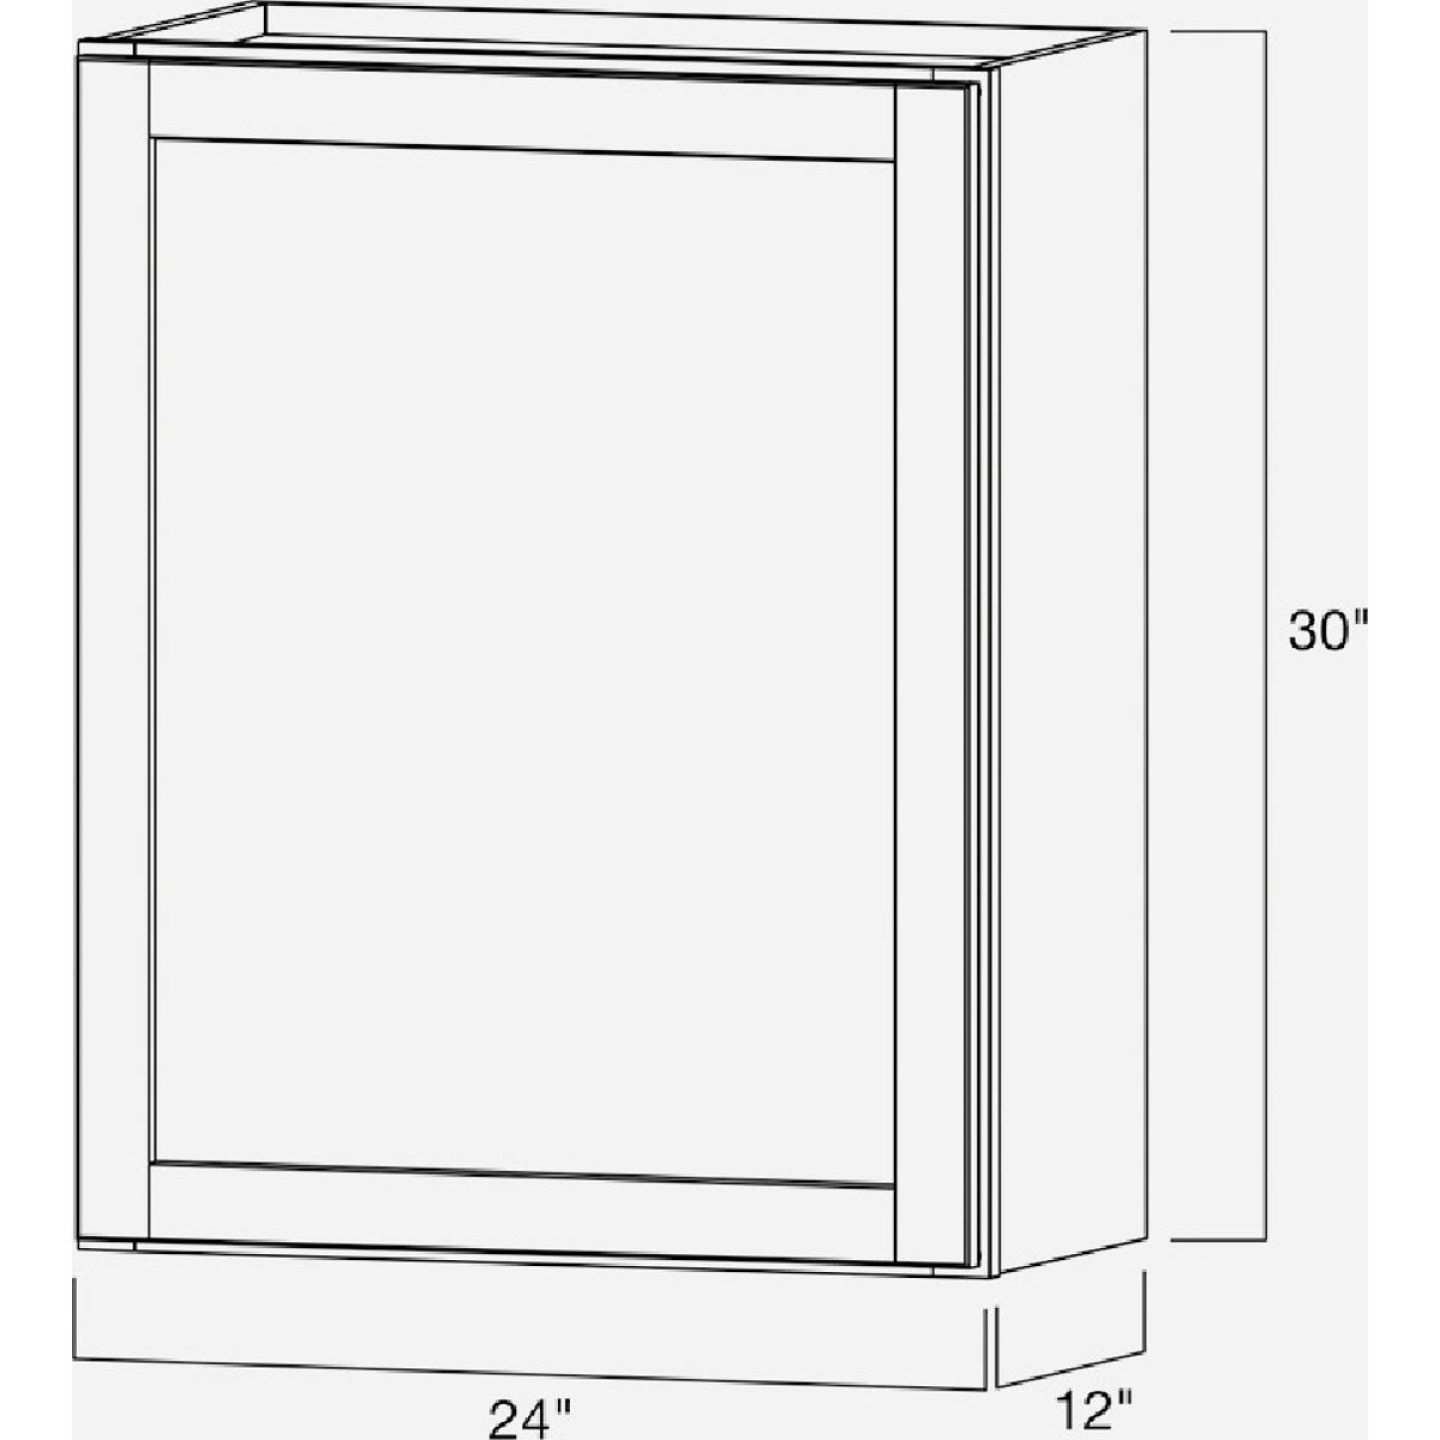 Continental Cabinets Andover Shaker 24 In. W x 30 In. H x 12 In. D White Thermofoil Wall Kitchen Cabinet Image 5